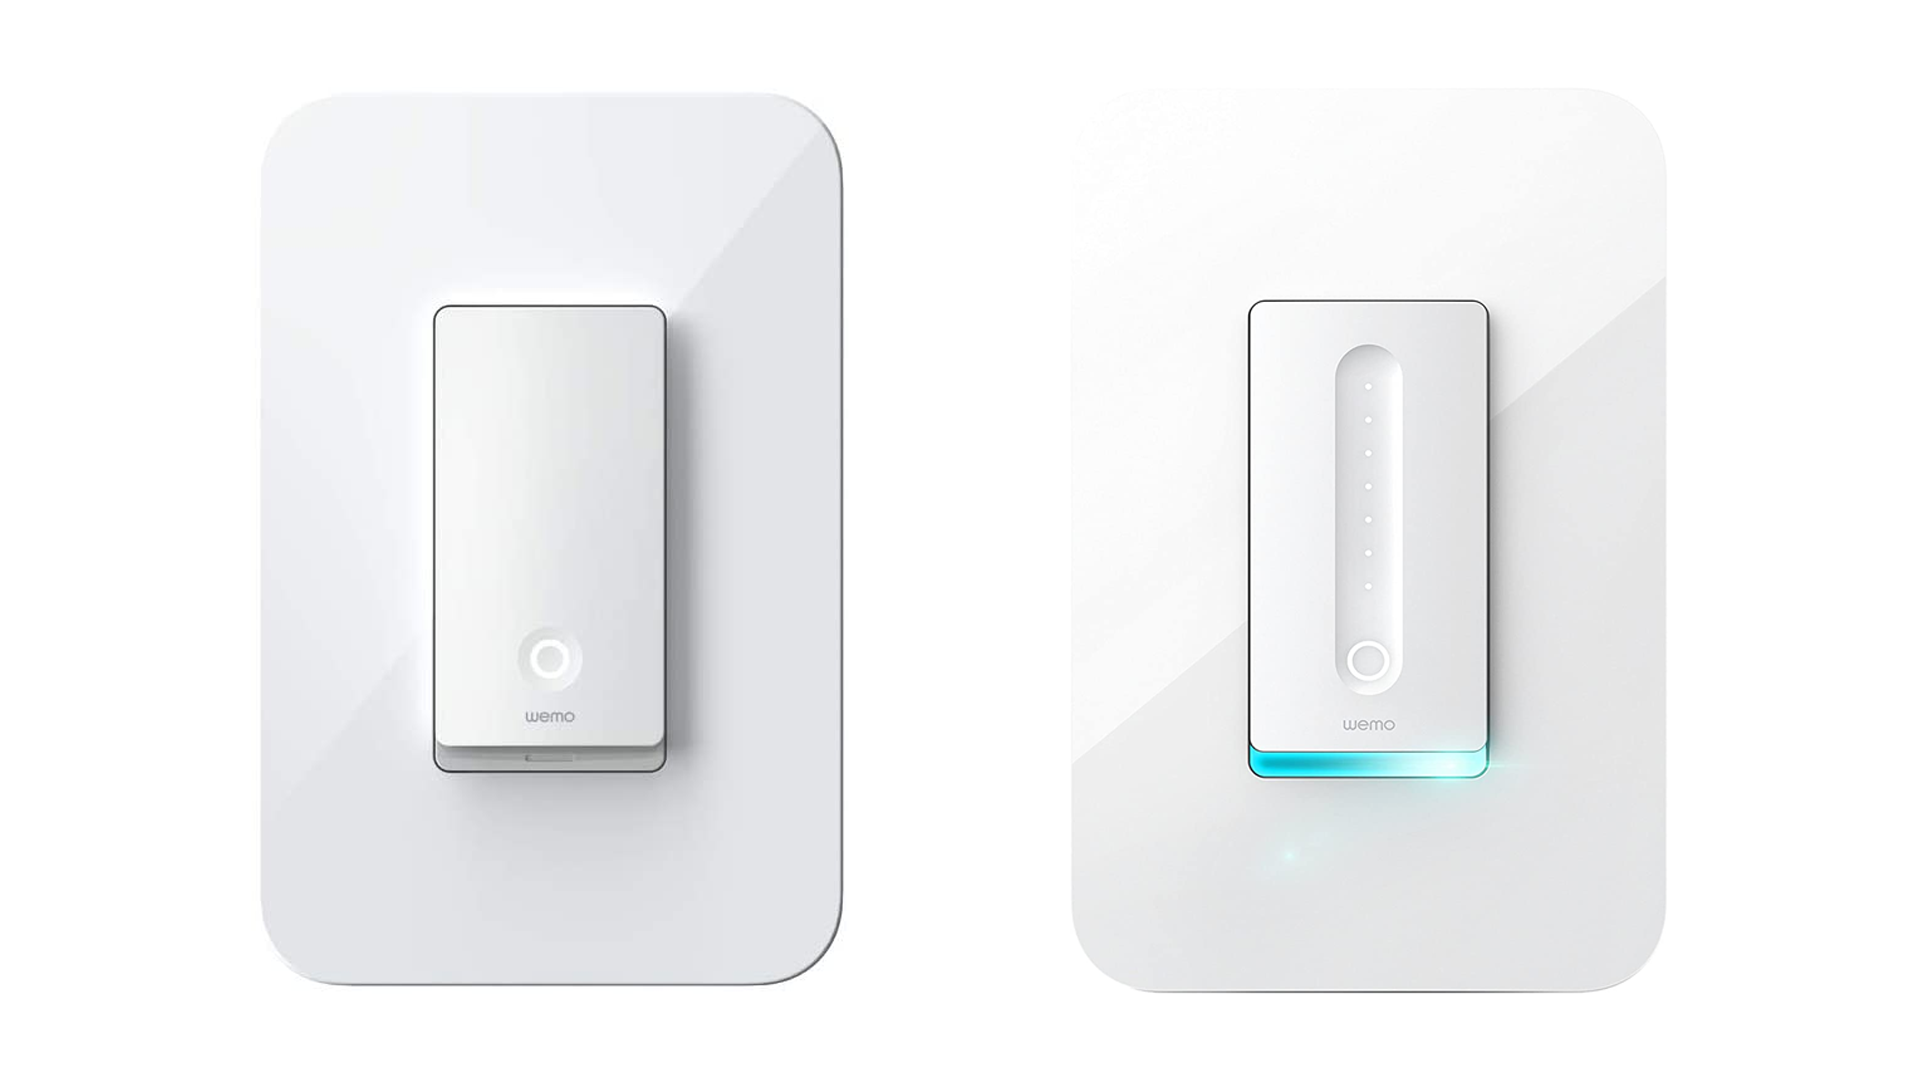 The WeMo Smart Switch or Dimmer